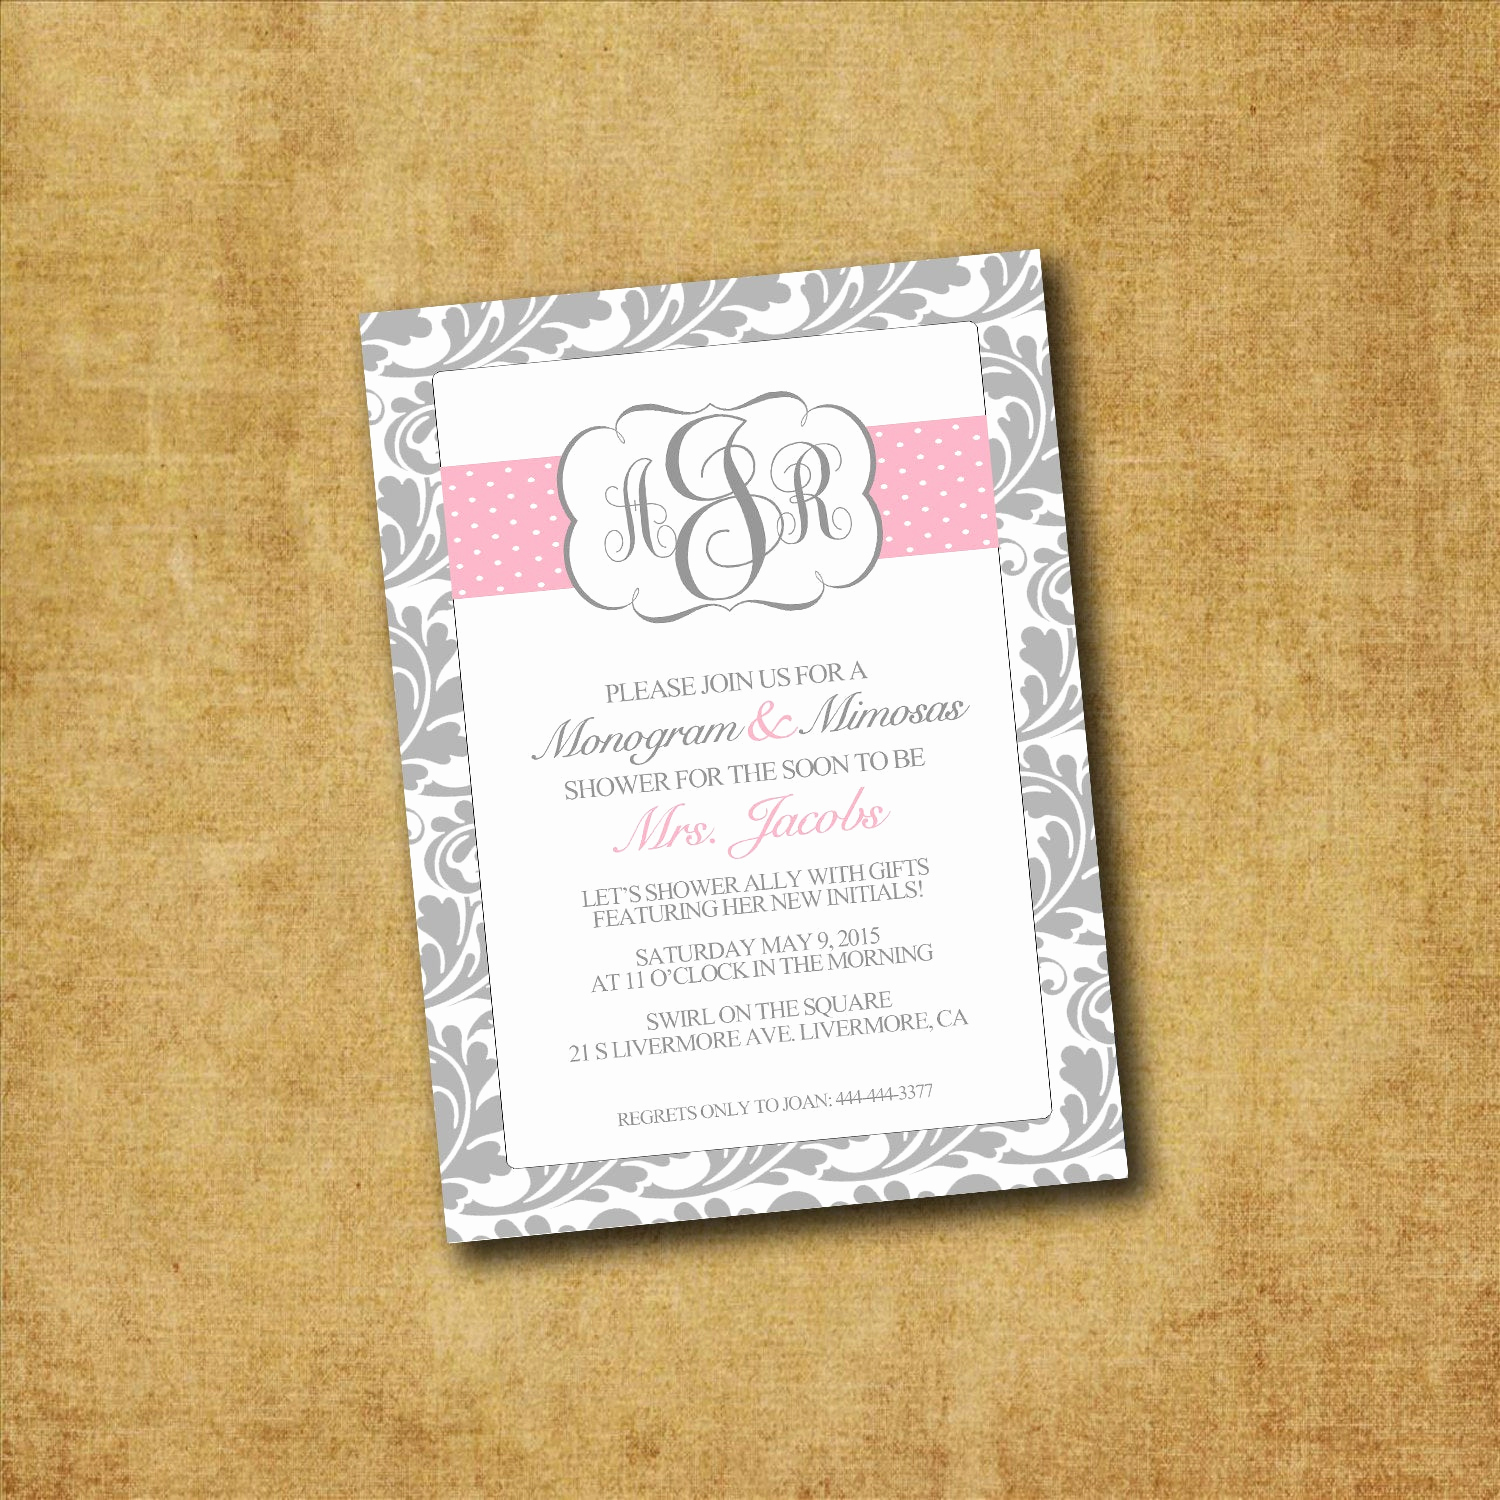 Mimosa Bridal Shower Invitation Lovely Printable Monogram & Mimosas Invitations Custom by Wedinfinity